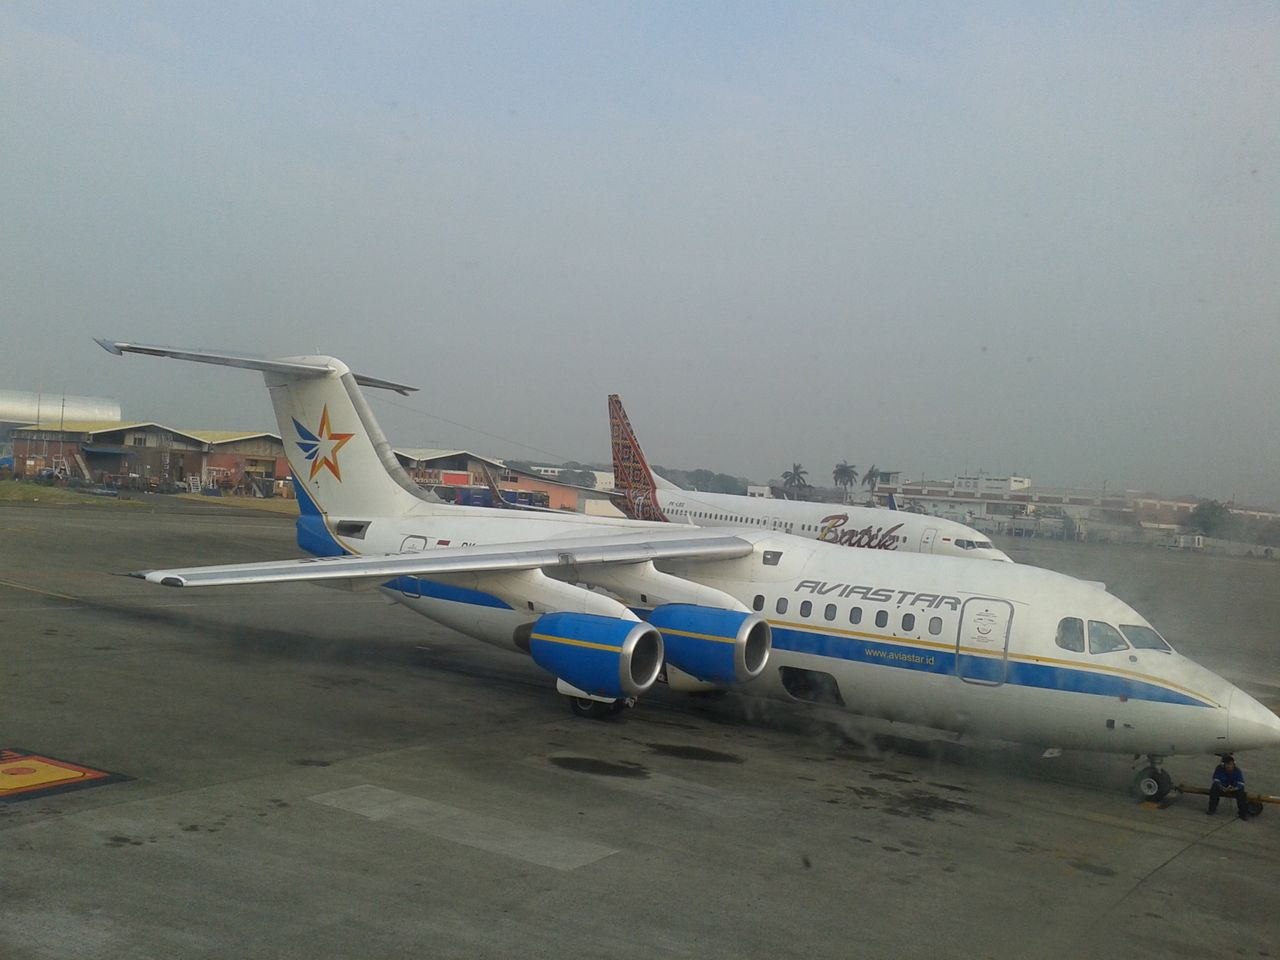 Review of Citilink Indonesia flight from Jakarta to Ketaping in